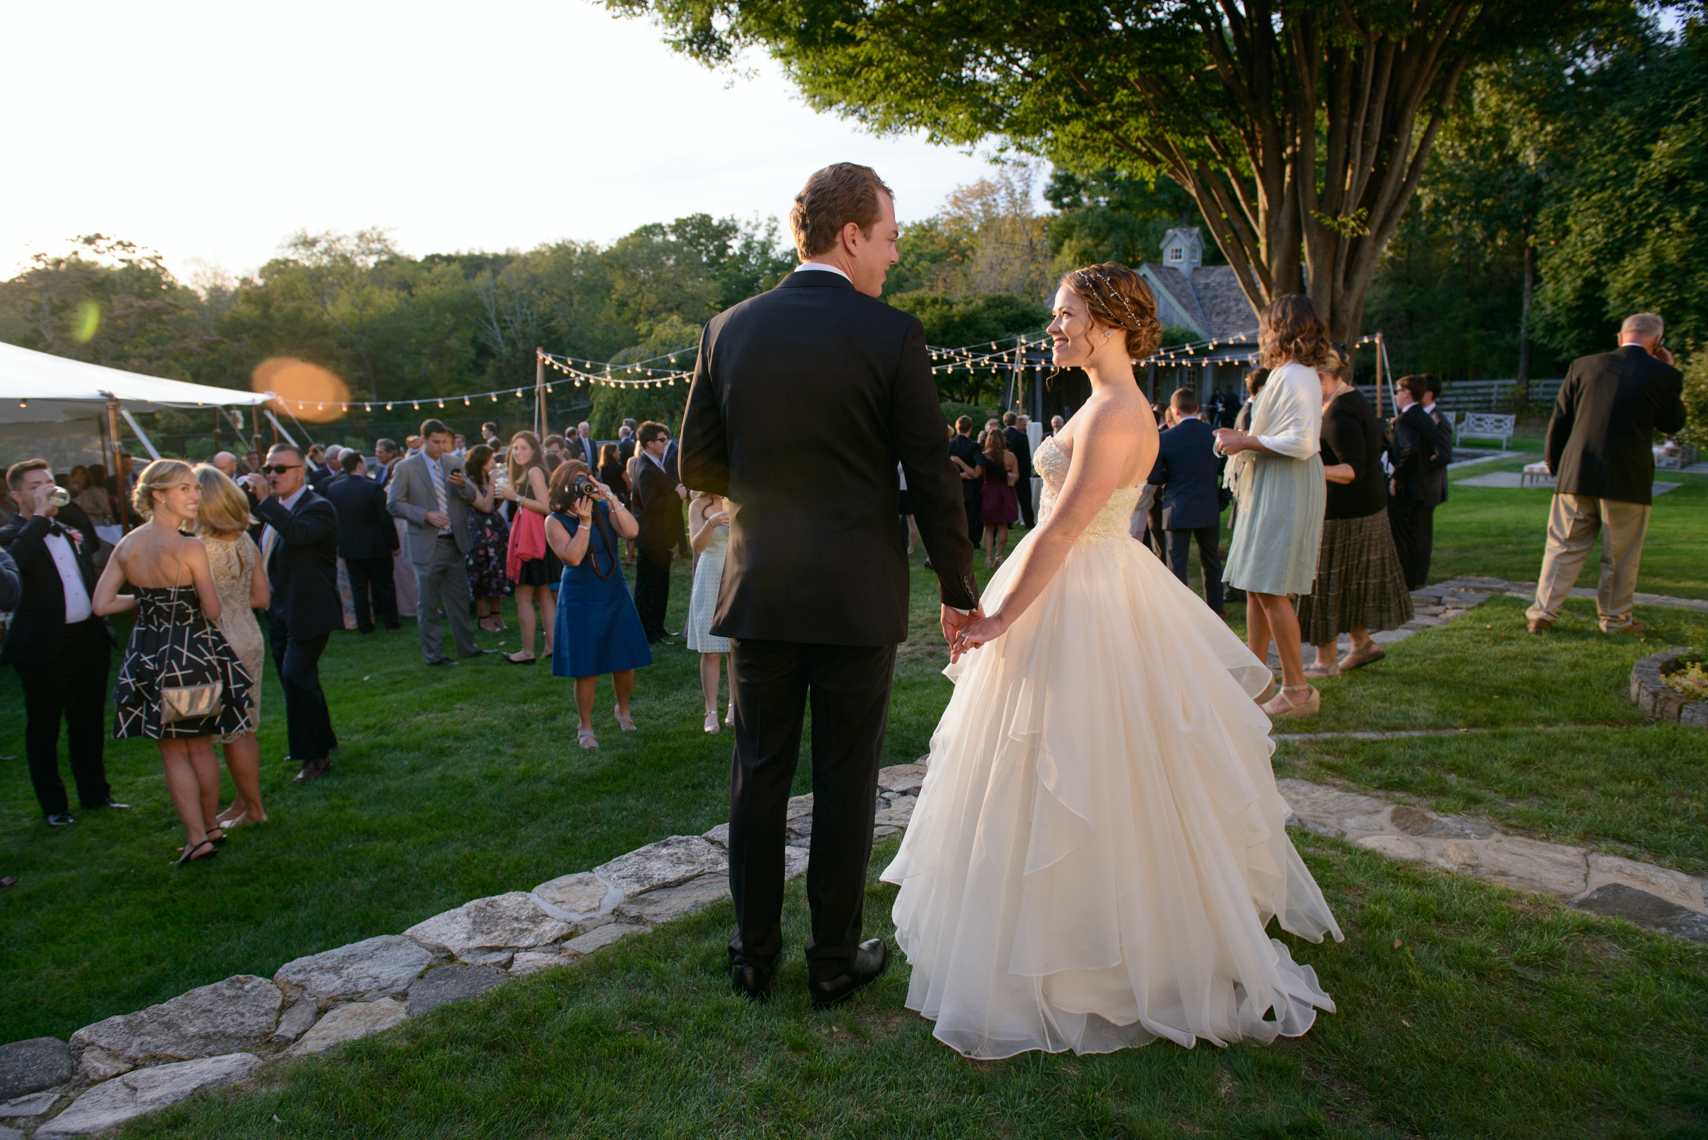 Betsy + Dave's romantic backyard September wedding, in Fairfield, CT.